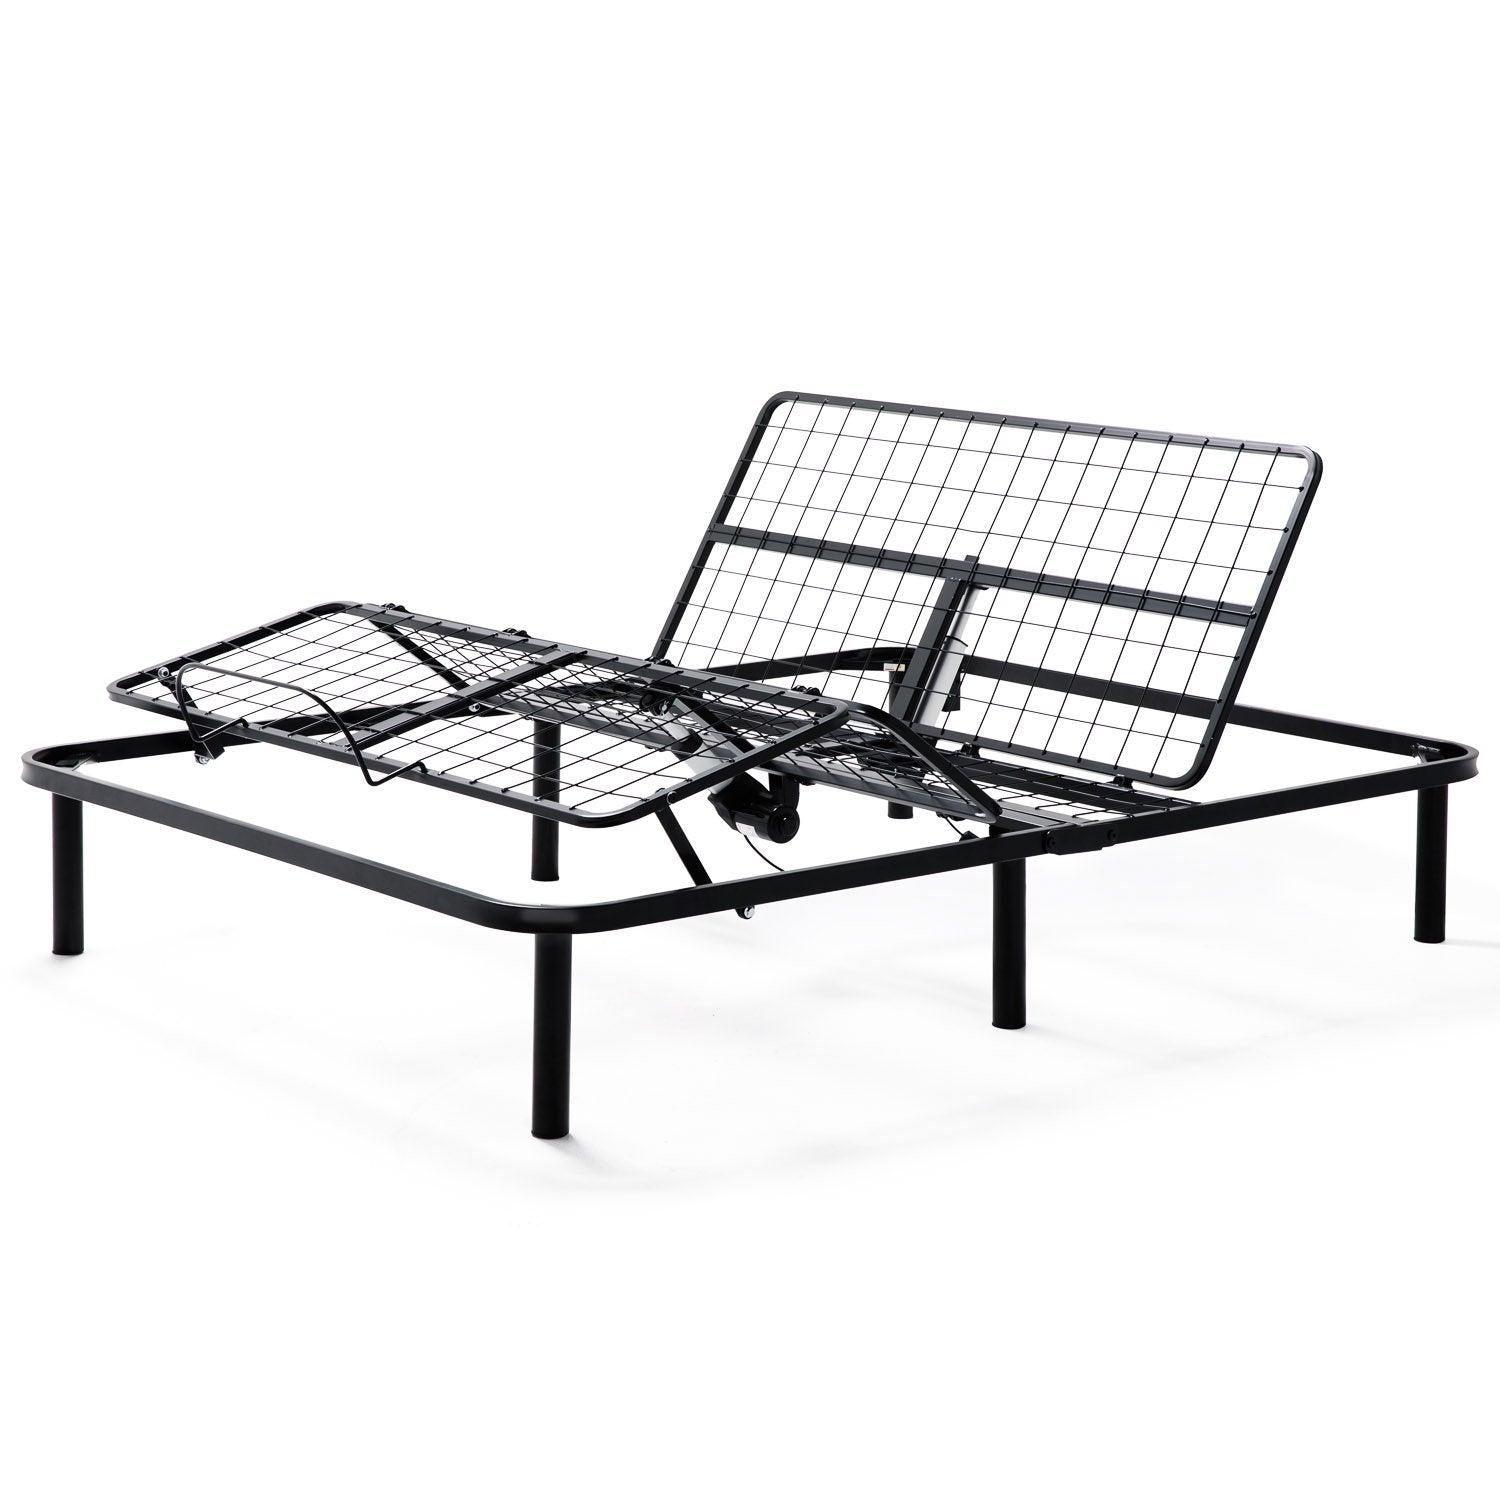 Sleep First Head-Up + Foot-Up Adjustable Power Base Bed Base Sleep First